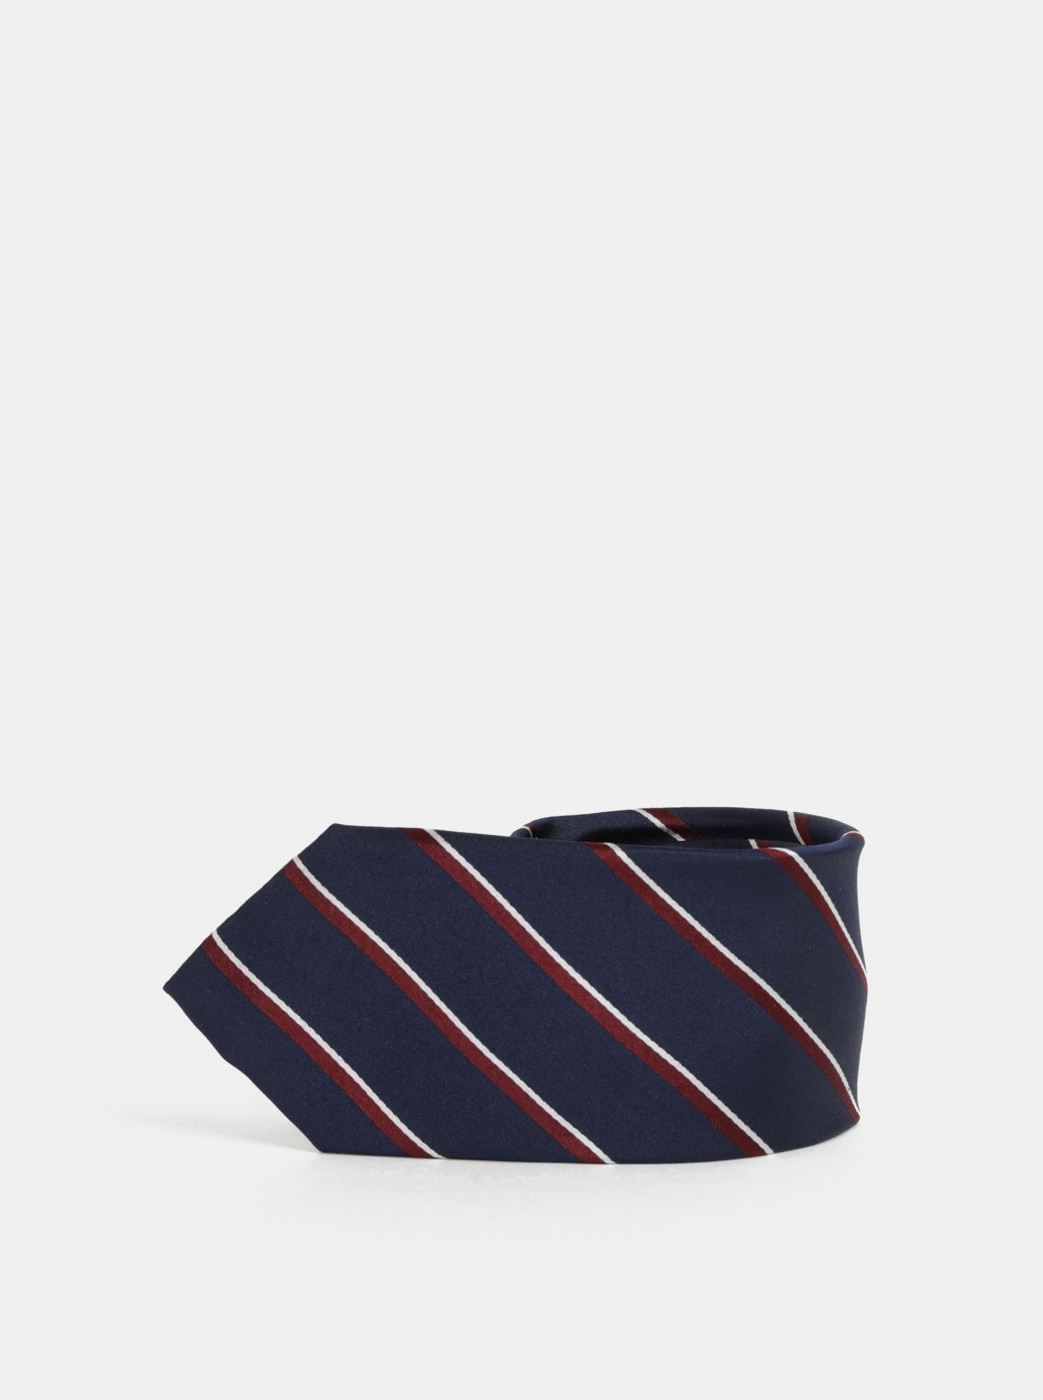 Burgundy-blue Striped Silk Tie Selected by Homme Noah